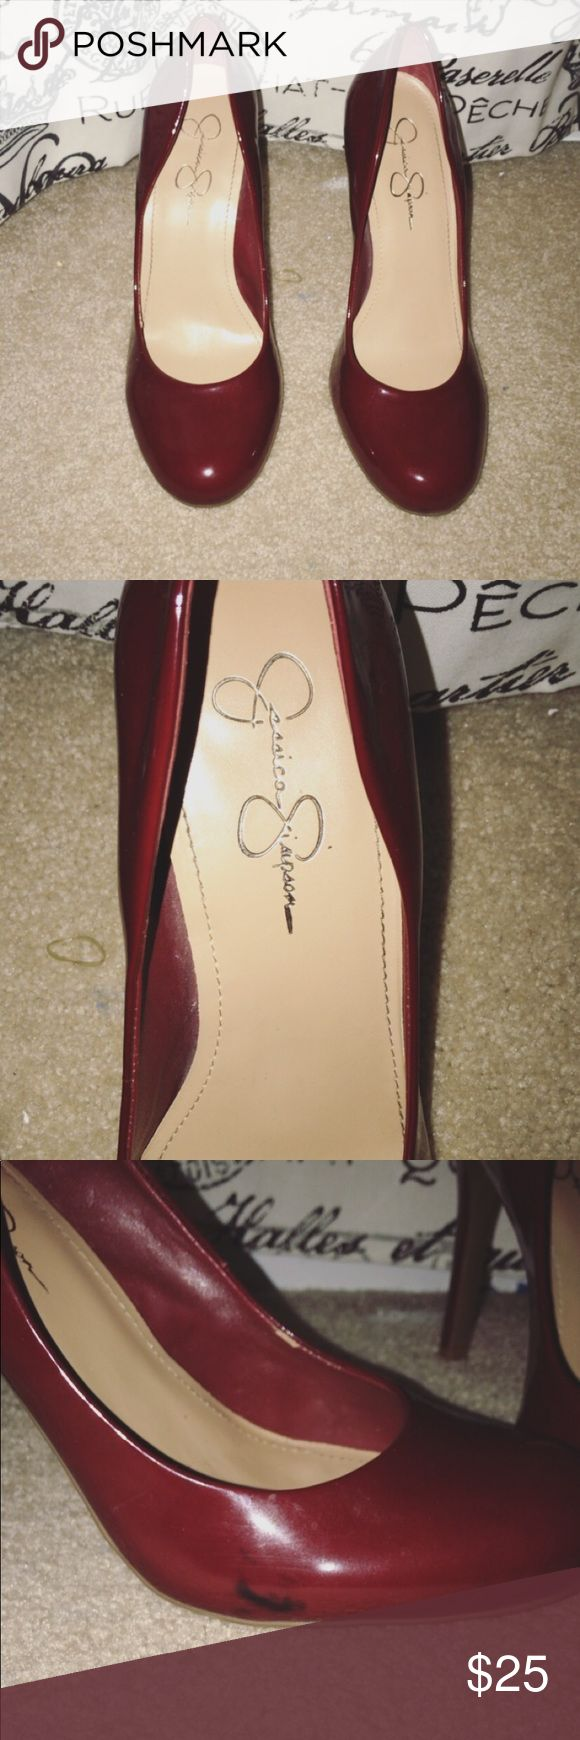 Red Jessica Simpson Heels Little scuff mark on one shoe Other than that very good condition  Only worn once Jessica Simpson Shoes Heels